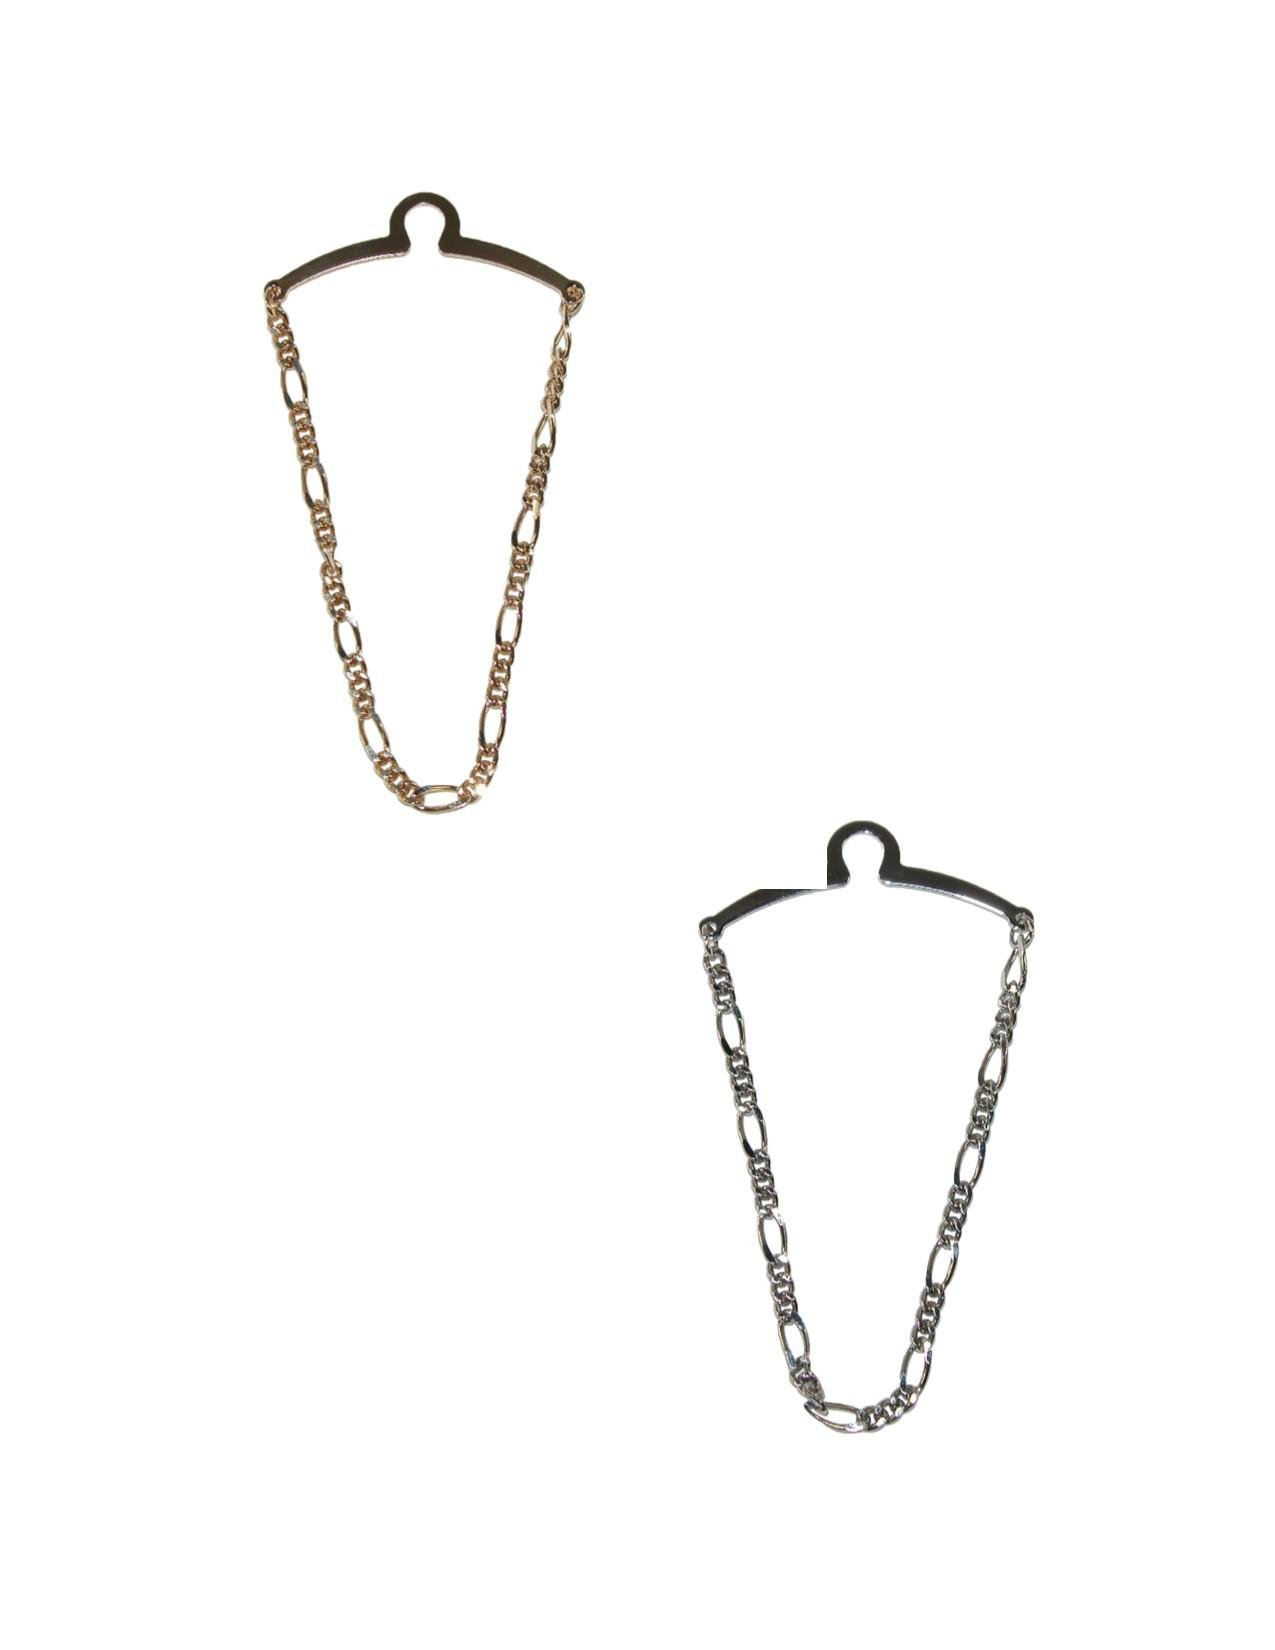 Competition Inc. Men's Figaro Style Link Tie Chains (Pack of 2), Gold/Silver